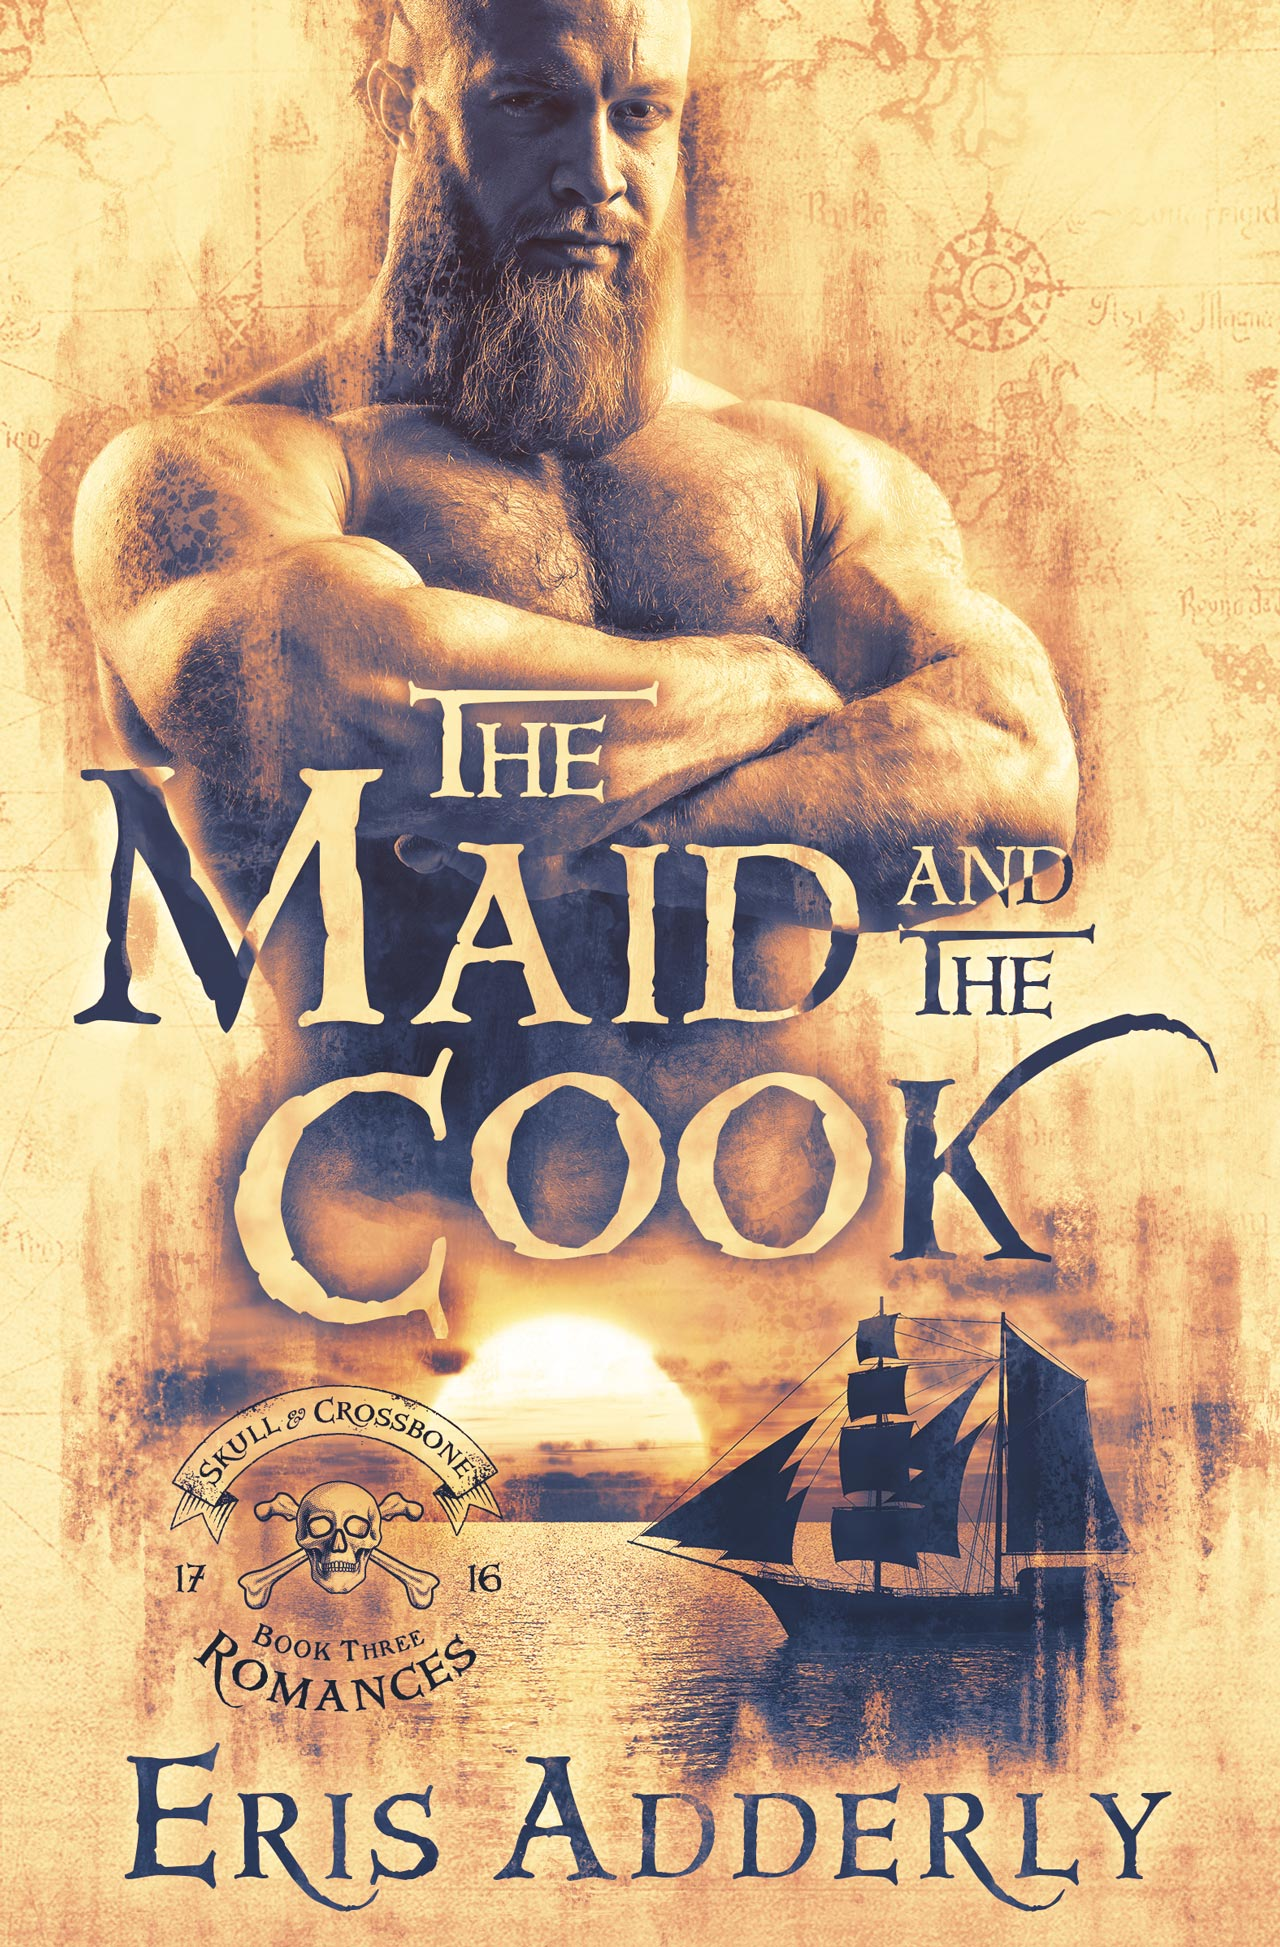 The Maid and the Cook by Eris Adderly ebook cover